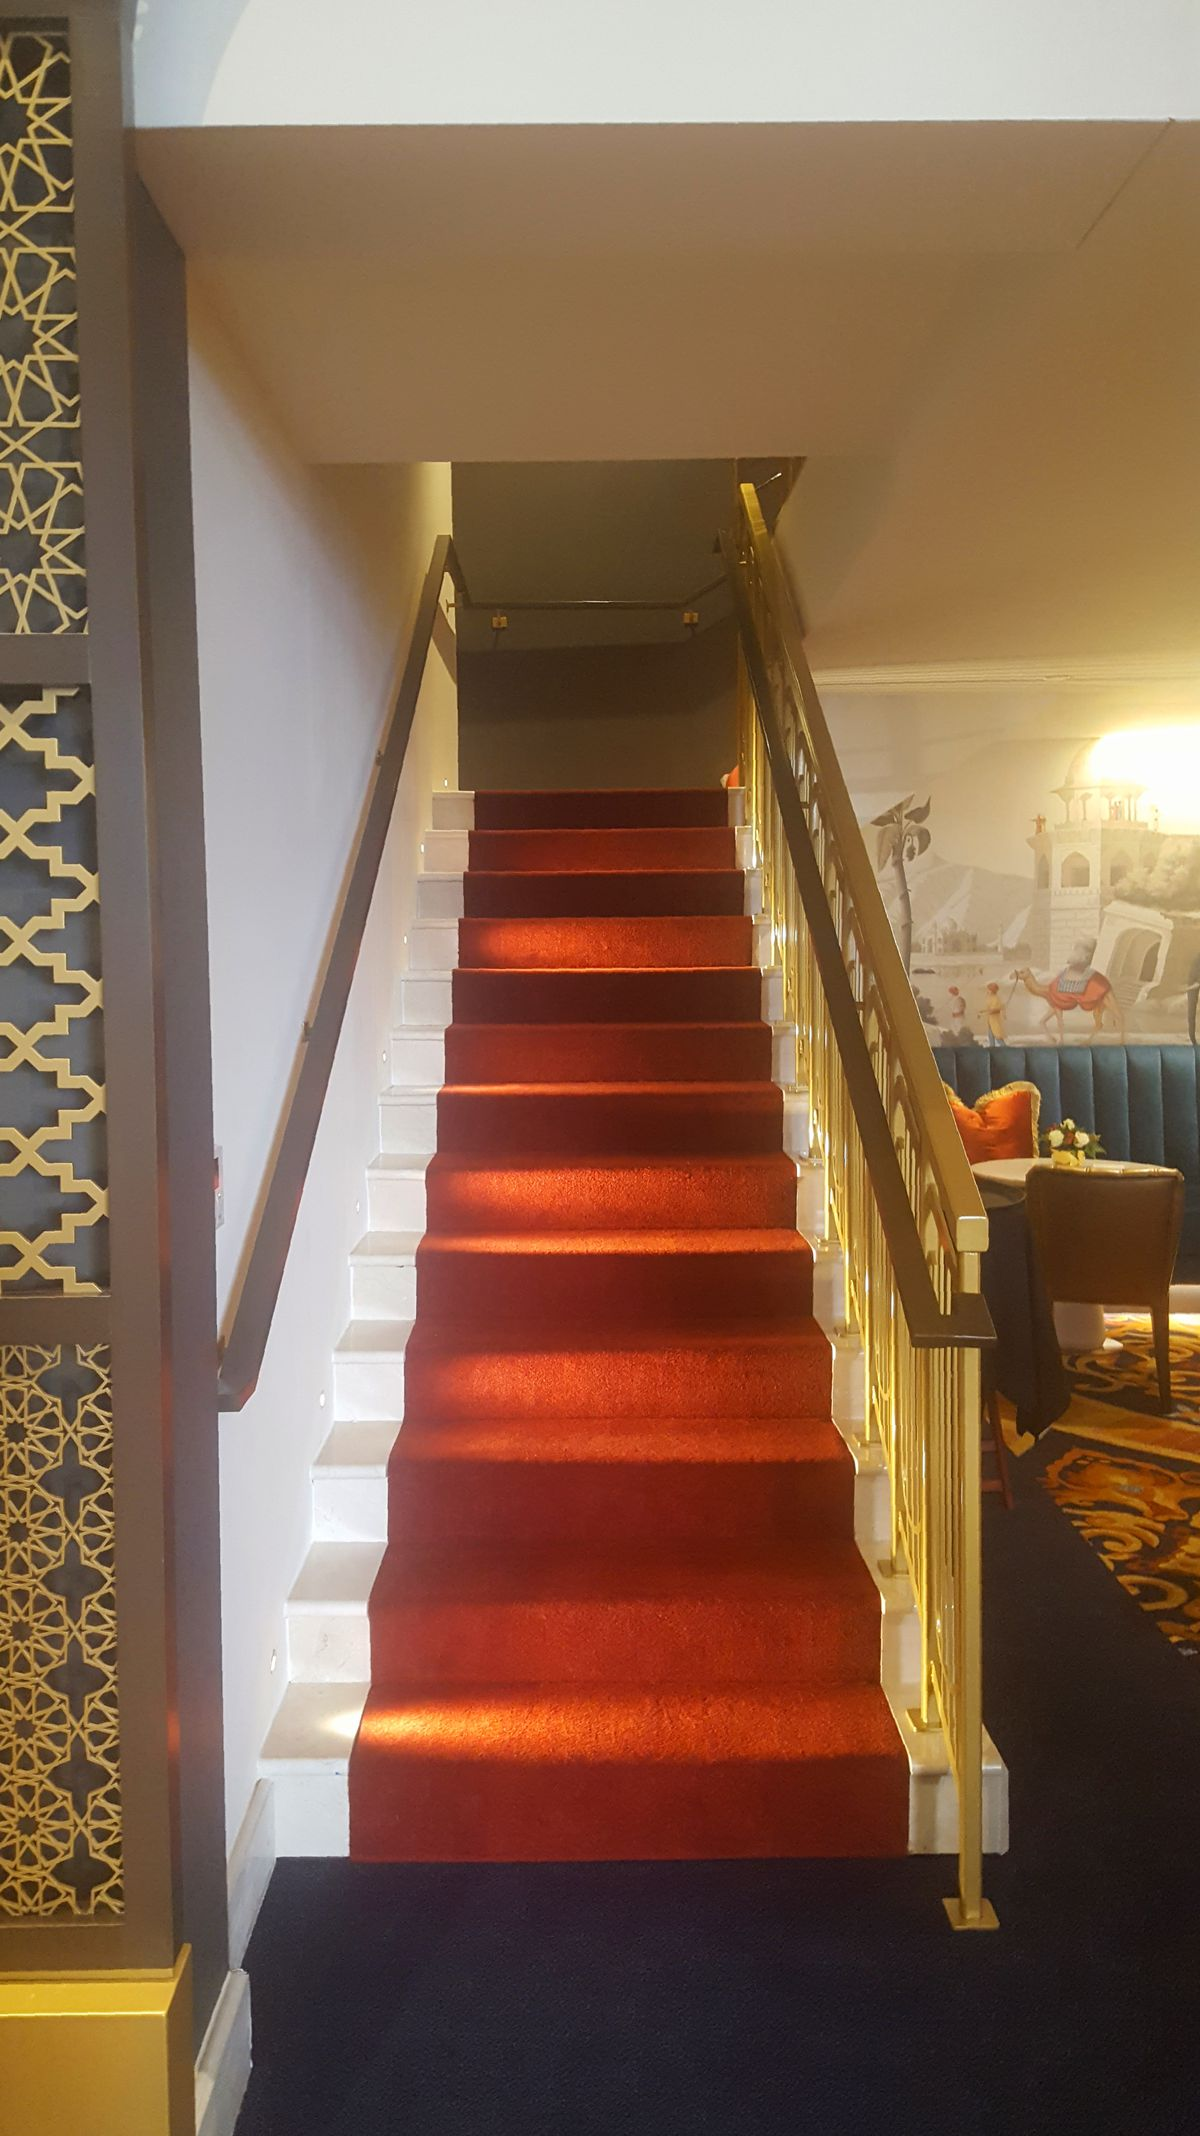 A photo of a velvet staircase that leads to another lounge on the second floor.